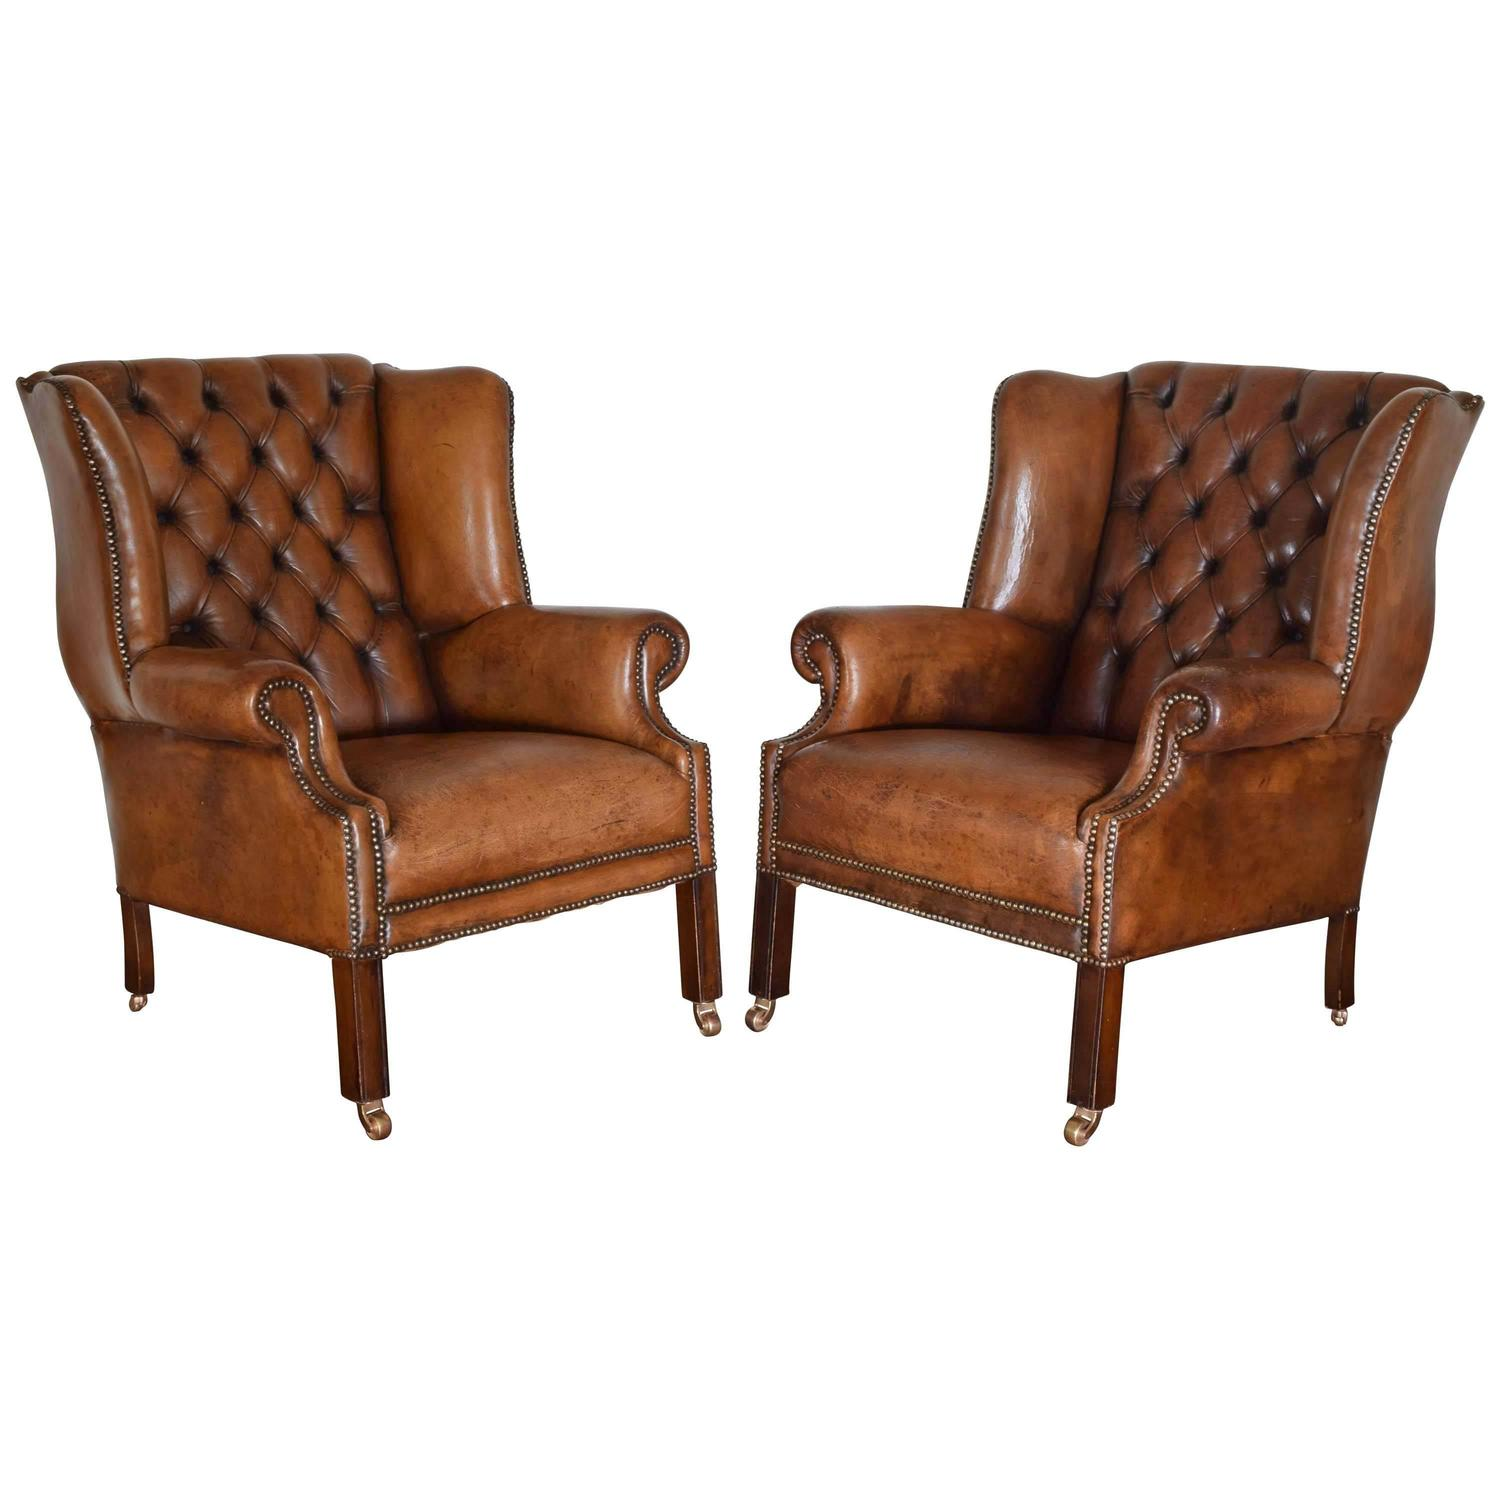 Pair of English George III Style Tufted Leather Wing Chairs at 1stdibs